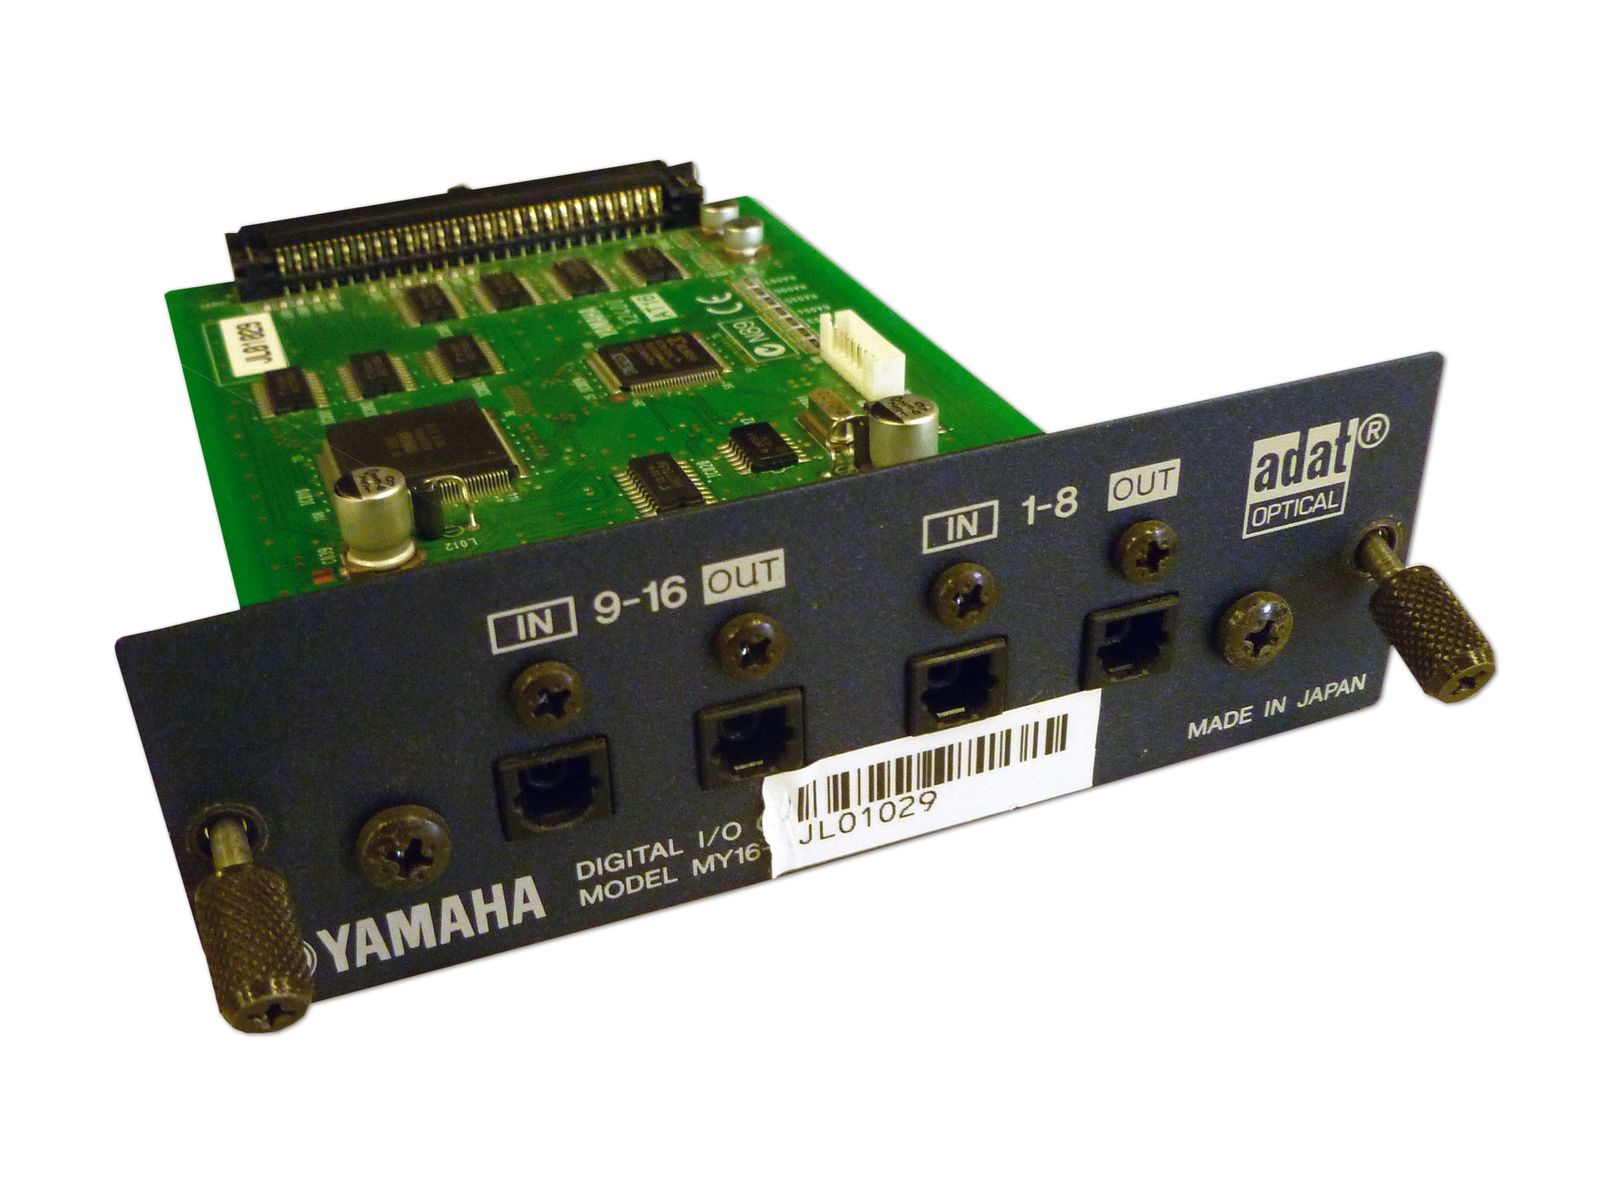 Yamaha Model MY16-AT 16-Channel ADAT I/O Card is available at Hollywood Sound Systems.